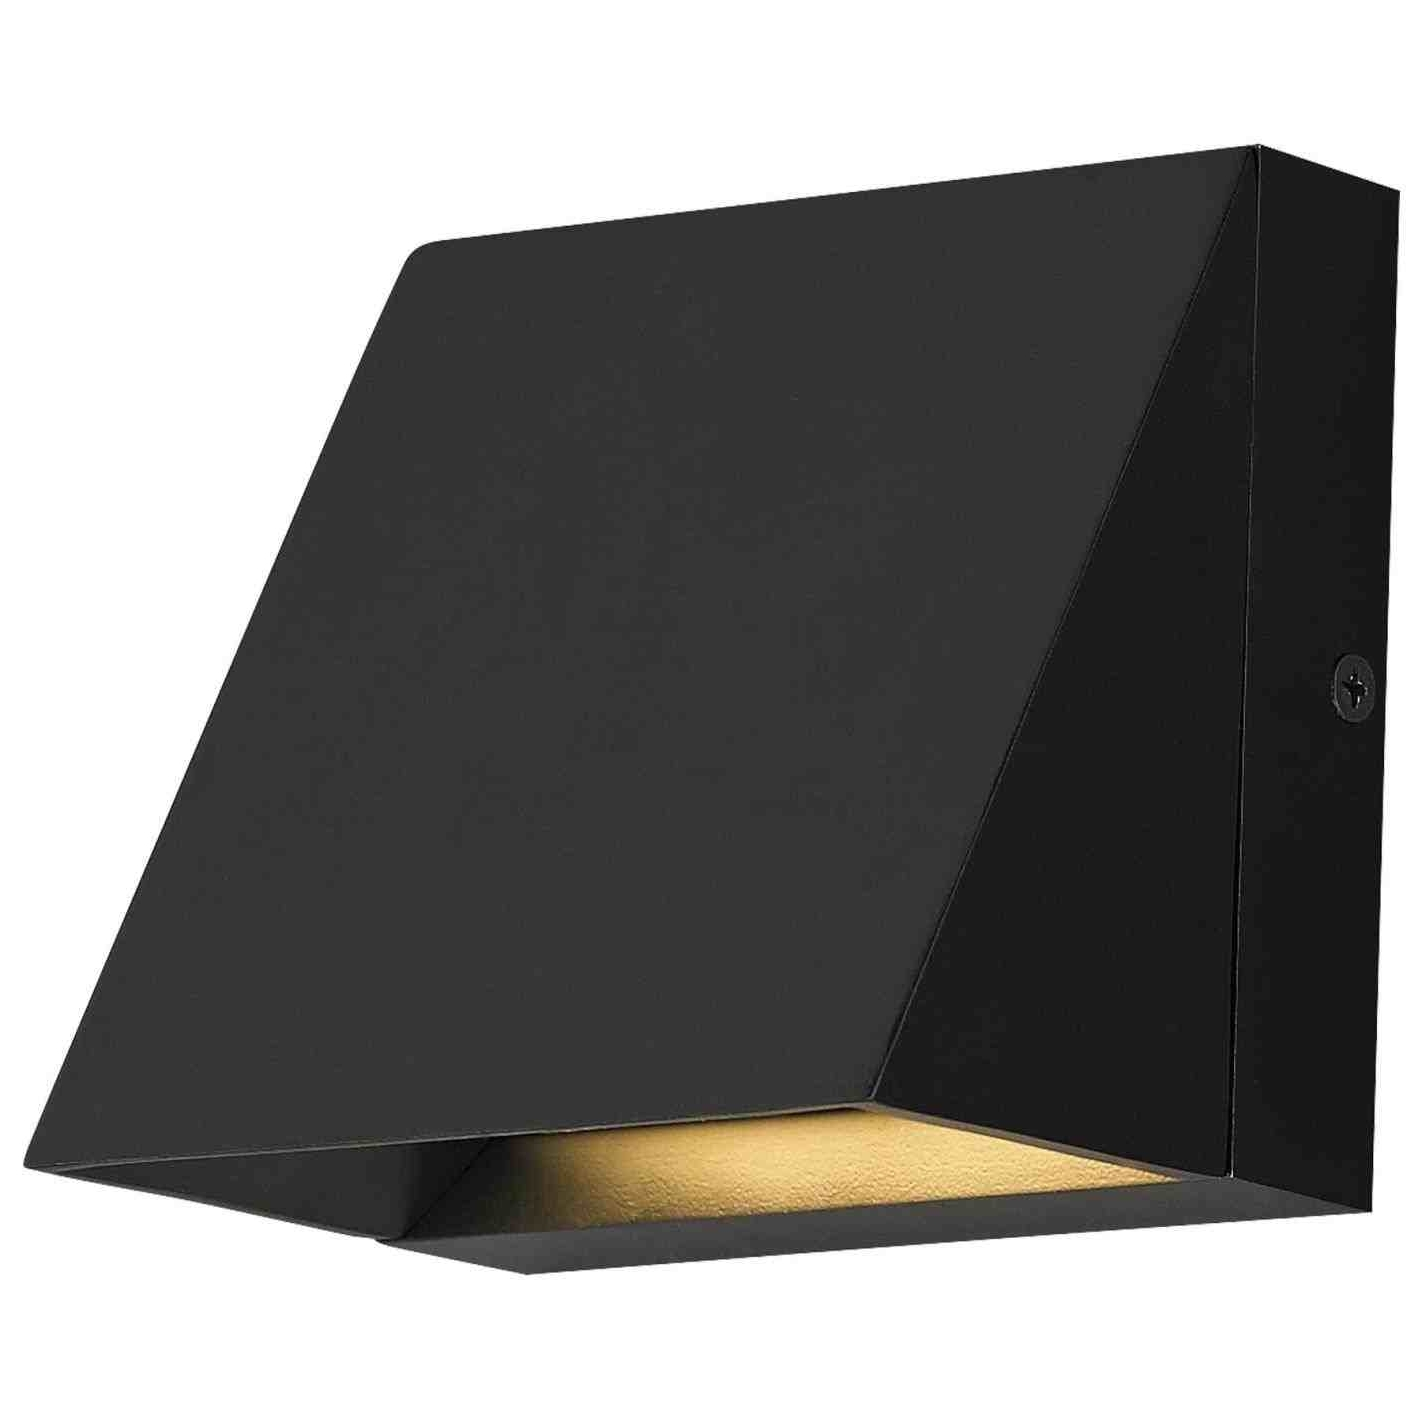 John Lewis Outdoor Ceiling Lights Pertaining To Well Liked John Lewis Outdoor Wall Lighting – Outdoor Lighting (View 9 of 20)